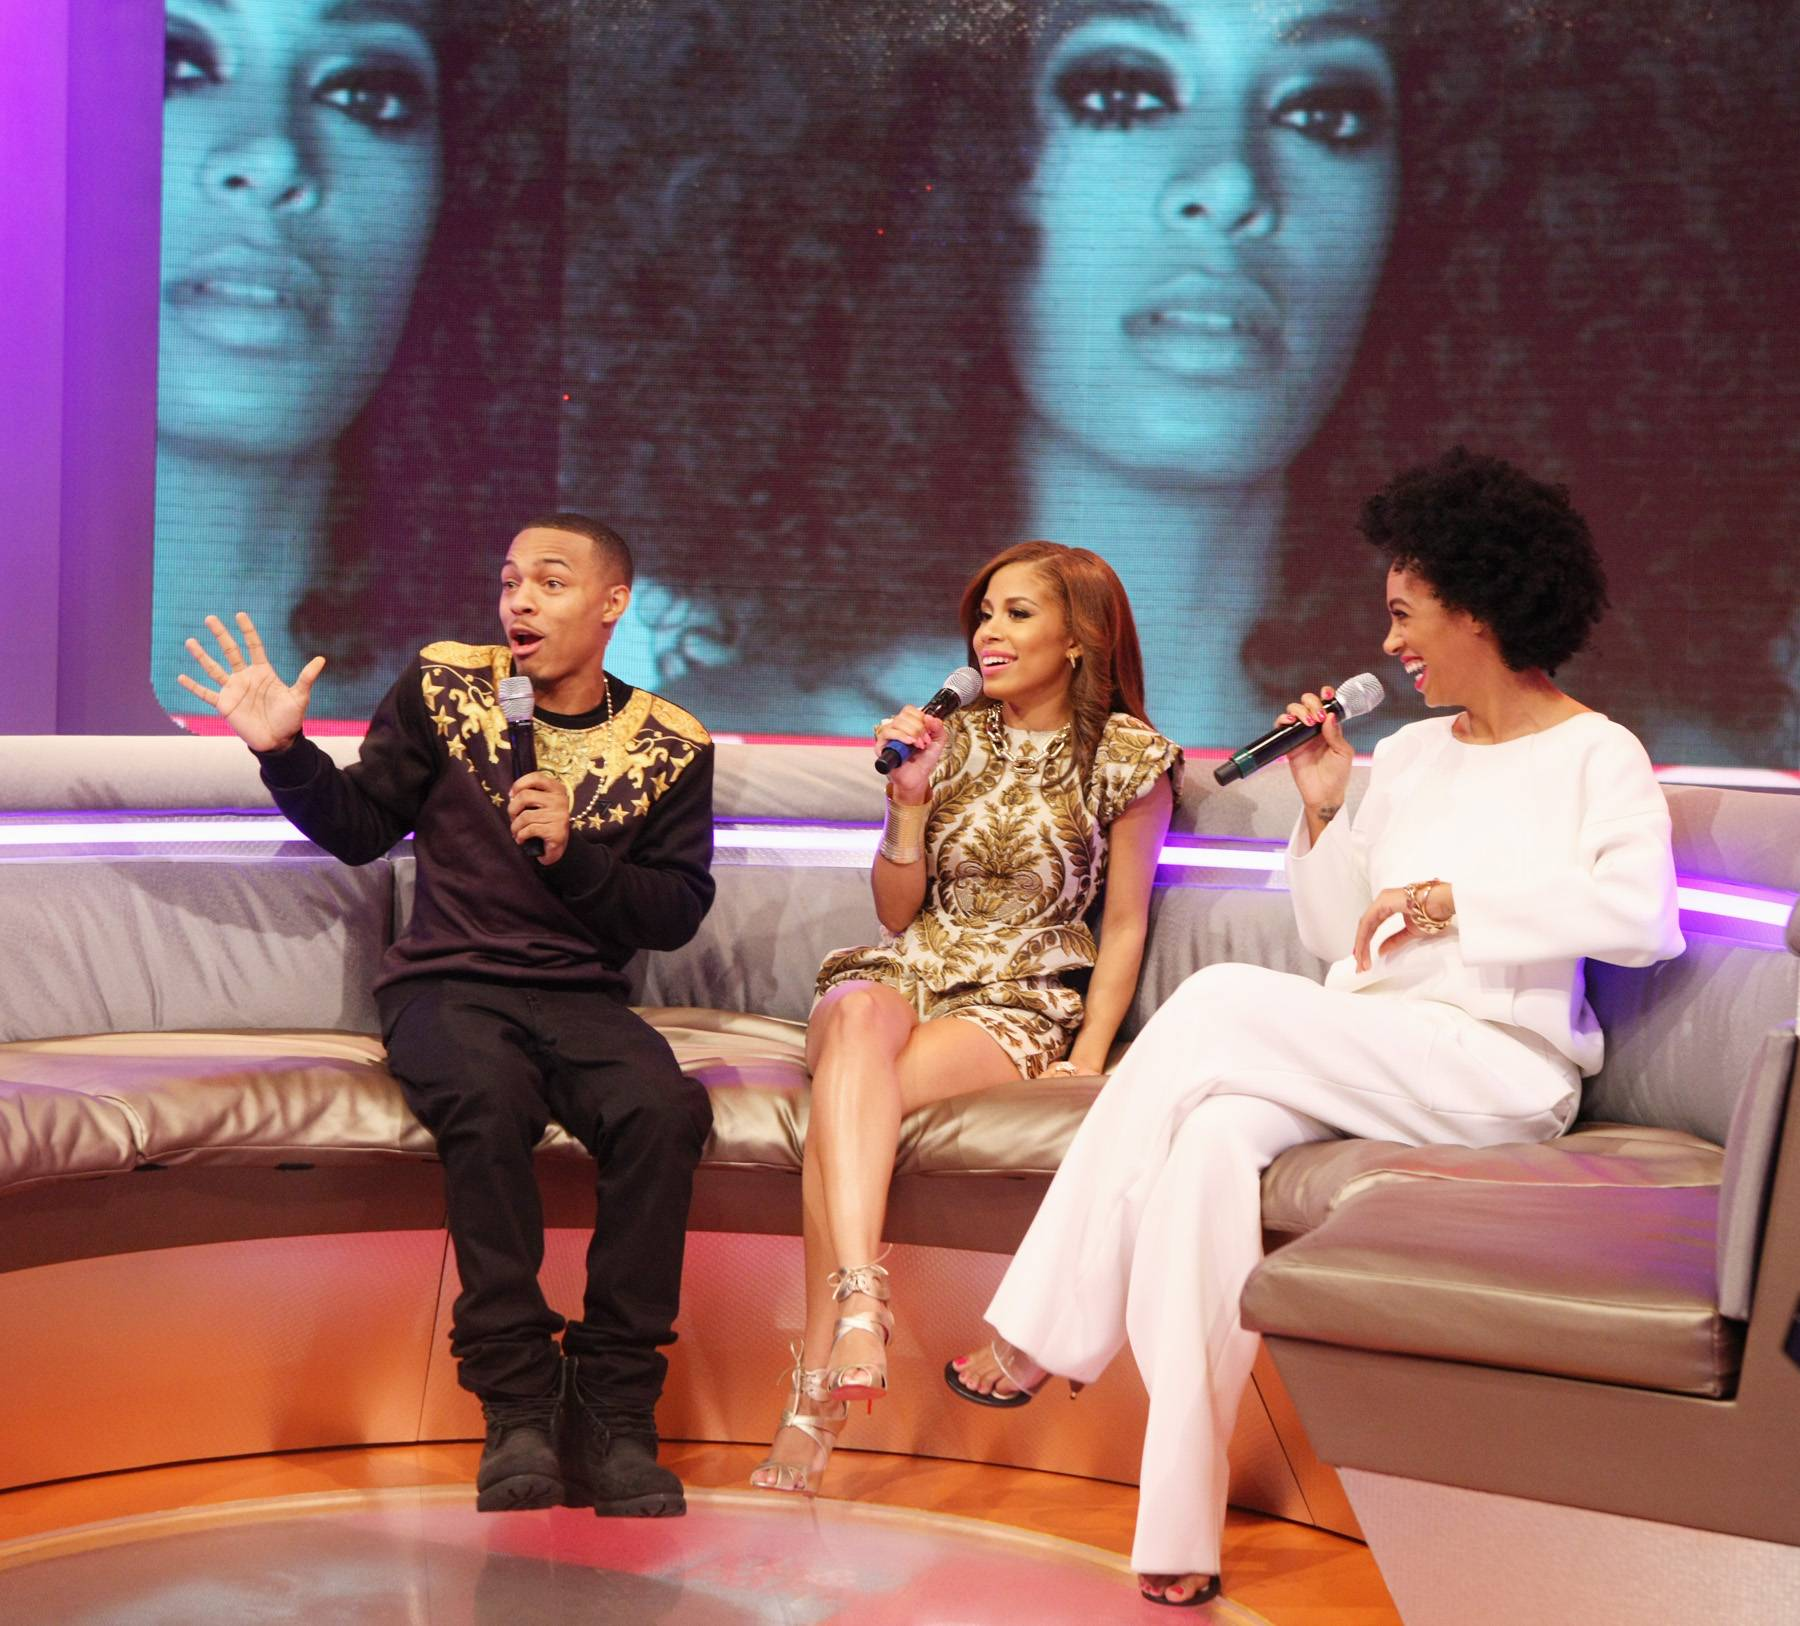 Pow! - The energy between Bow Wow, Keshia Chante and Solange Knowles fills the room as they talk new music. (Photo: Bennett Raglin/BET/Getty Images for BET)